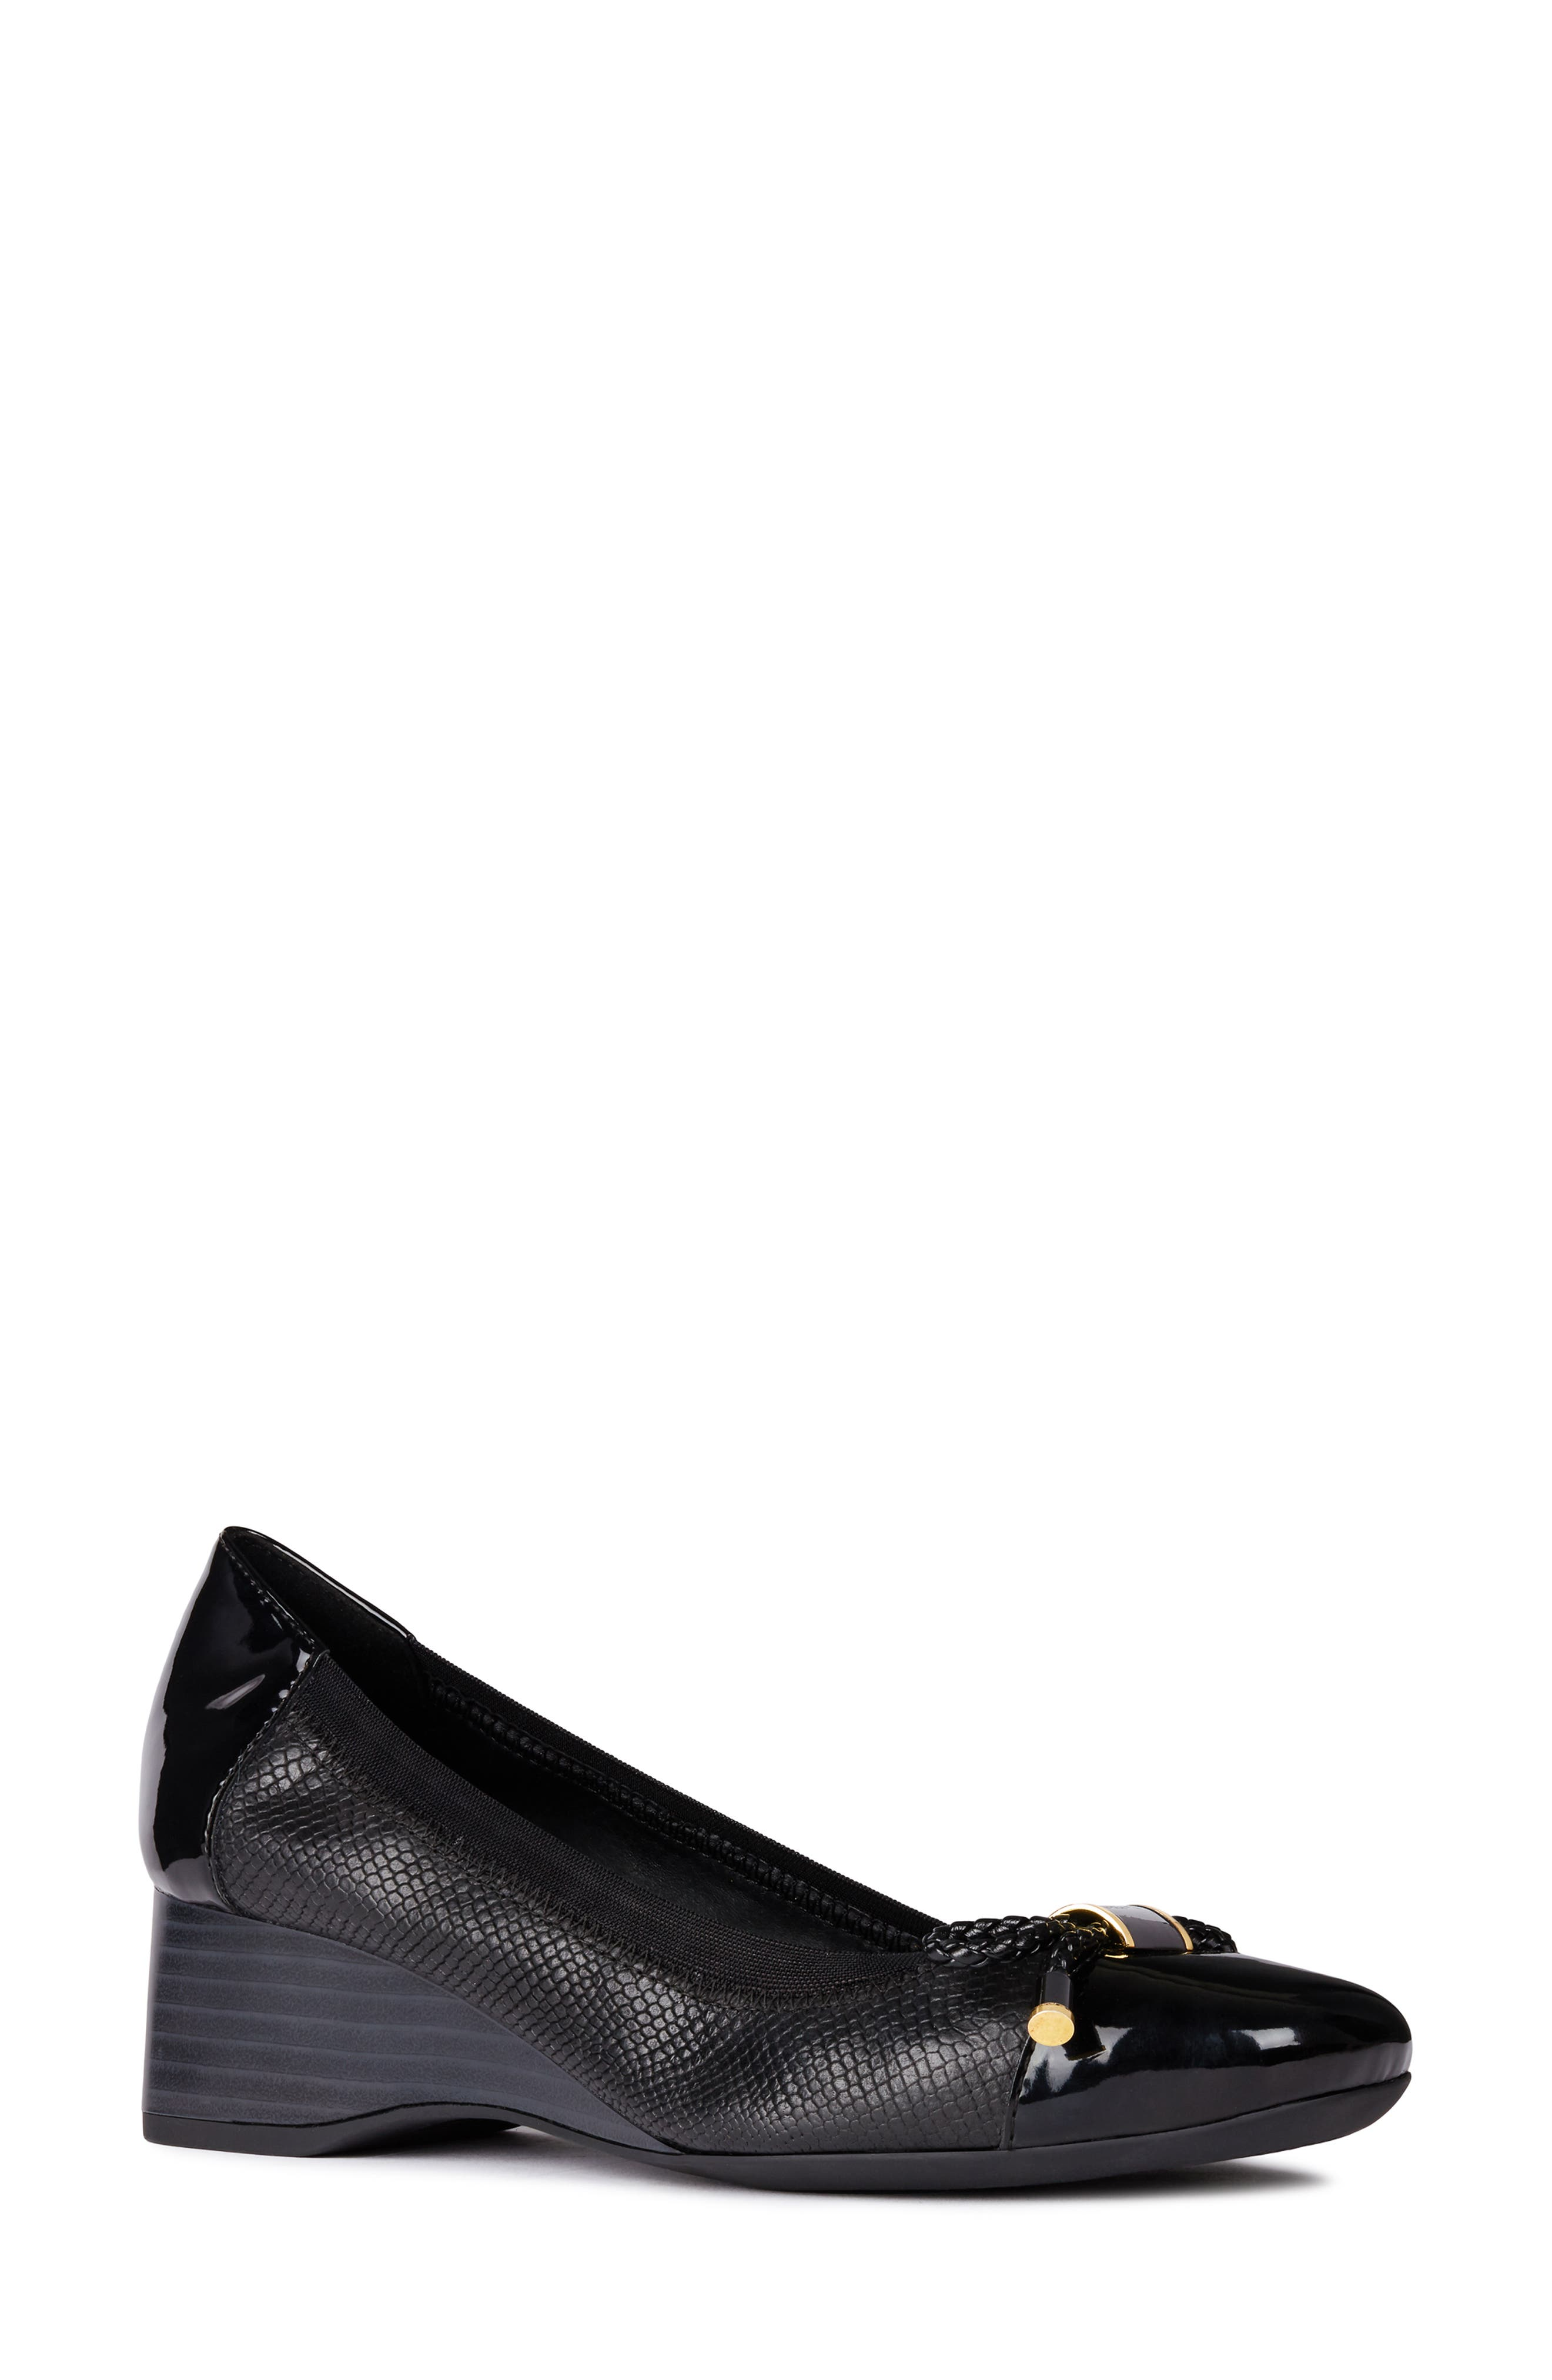 GEOX Audalya Wedge Pump, Main, color, BLACK LEATHER